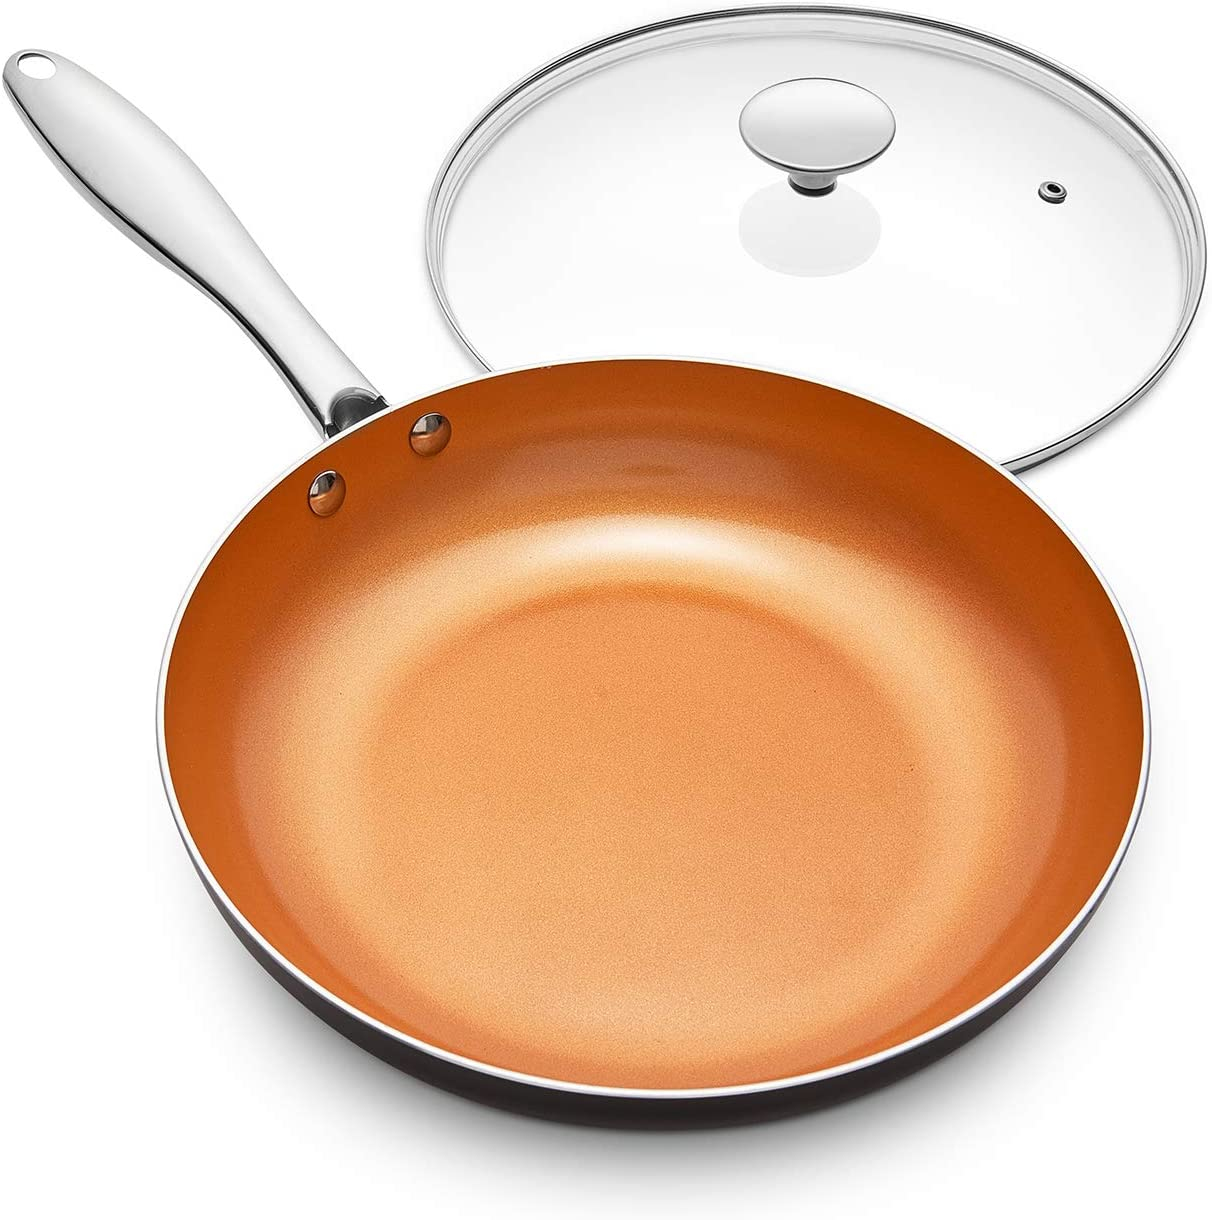 MICHELANGELO 12 Inch Frying Pan with Lid, Nonstick Copper Frying Pan with Titanium Ceramic Interior, Nonstick Frying Pans, Nonstick Skillet with Lid, Large Copper Pans Nonstick, Induction Compatible